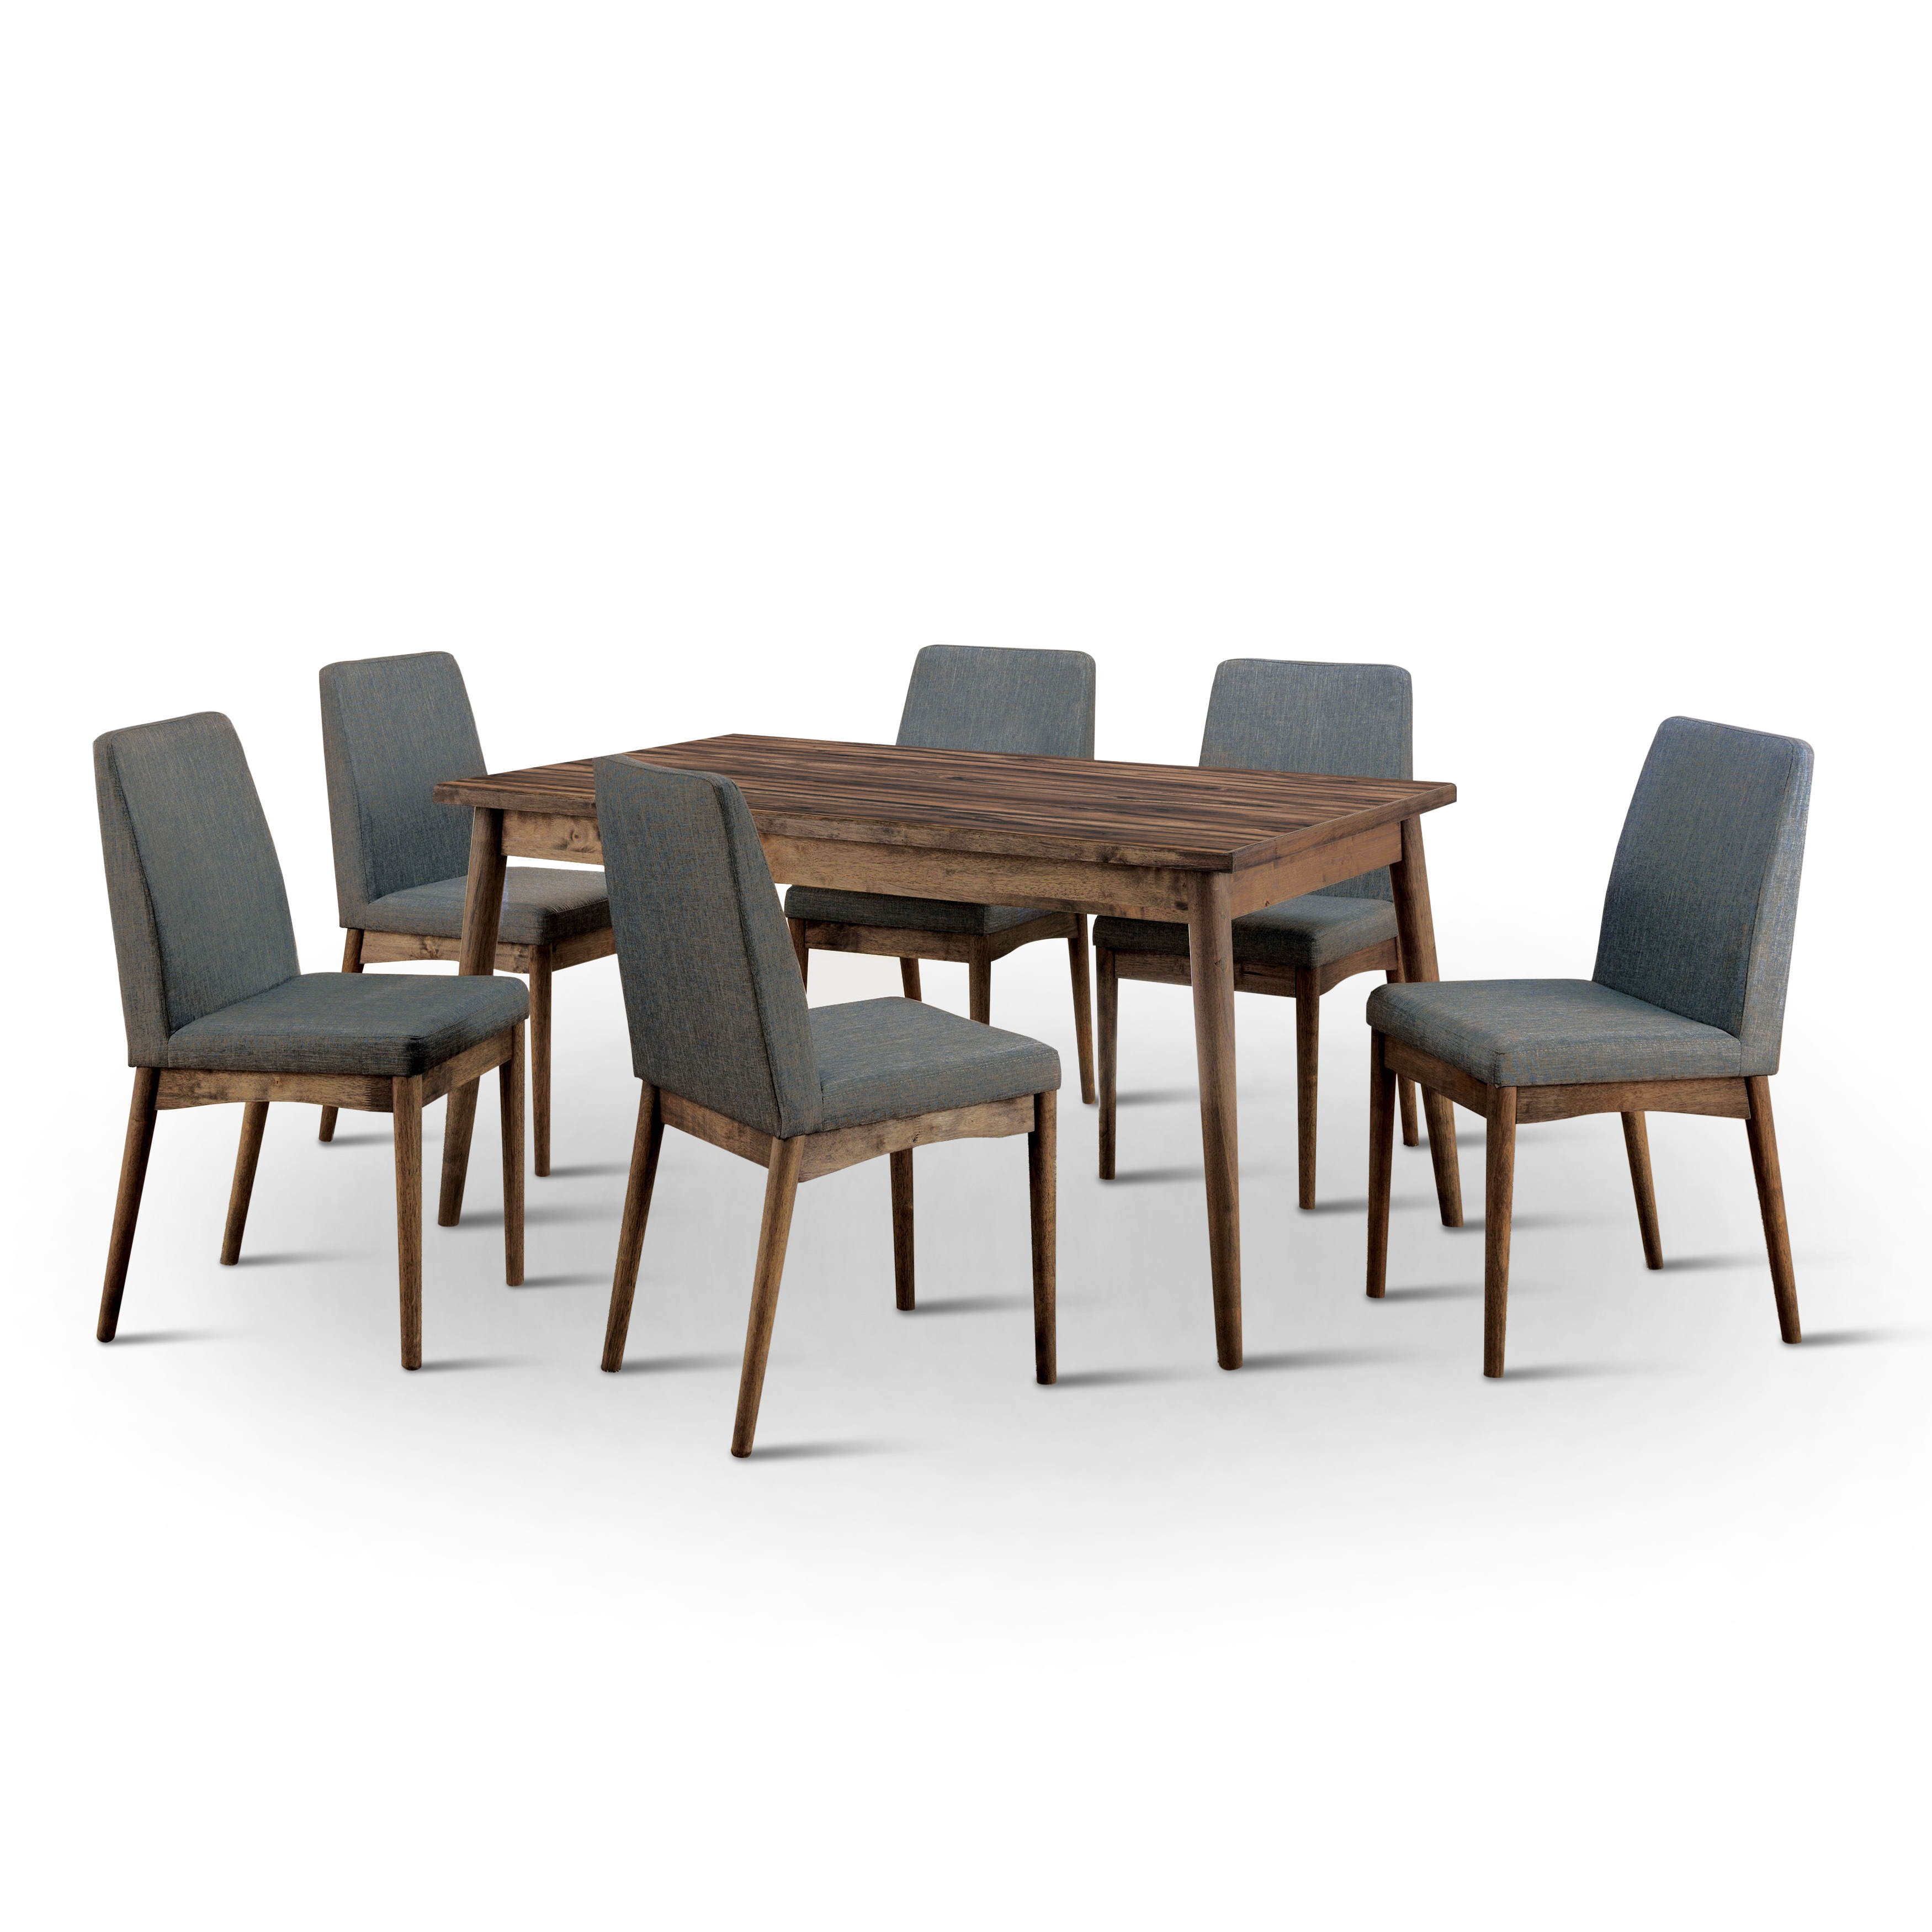 Shop Furniture Of America Reynorth Mid Century Modern 7 Piece Natural Tone Dining  Set   Free Shipping Today   Overstock.com   13999049